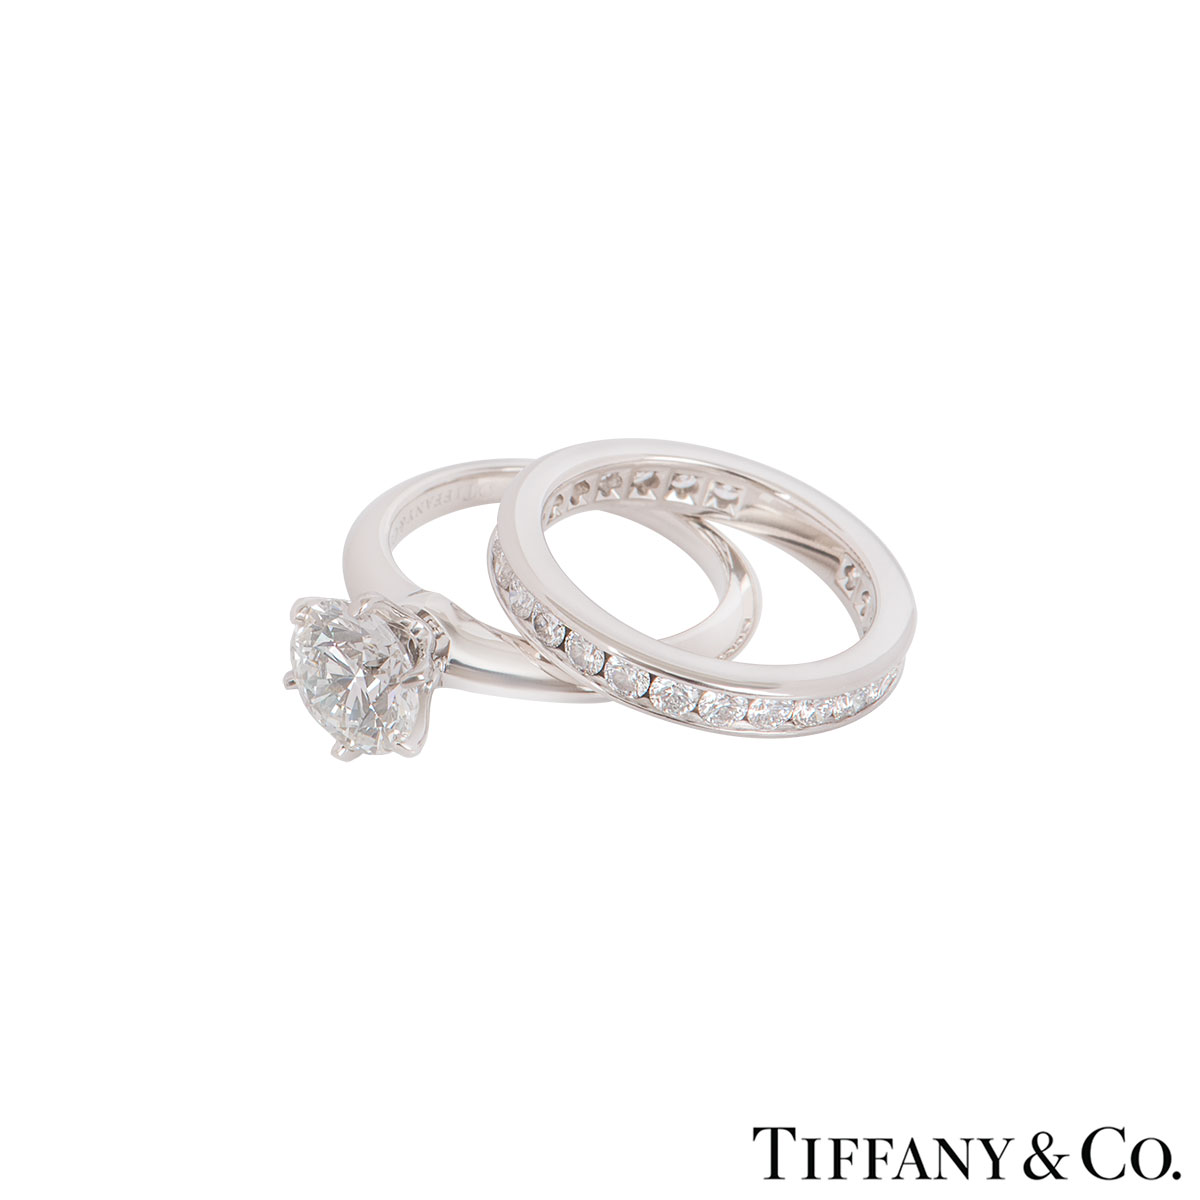 Tiffany & Co. Platinum Diamond Ring 1.61ct I/VS2 XXX With A Full Diamond Eternity Ring